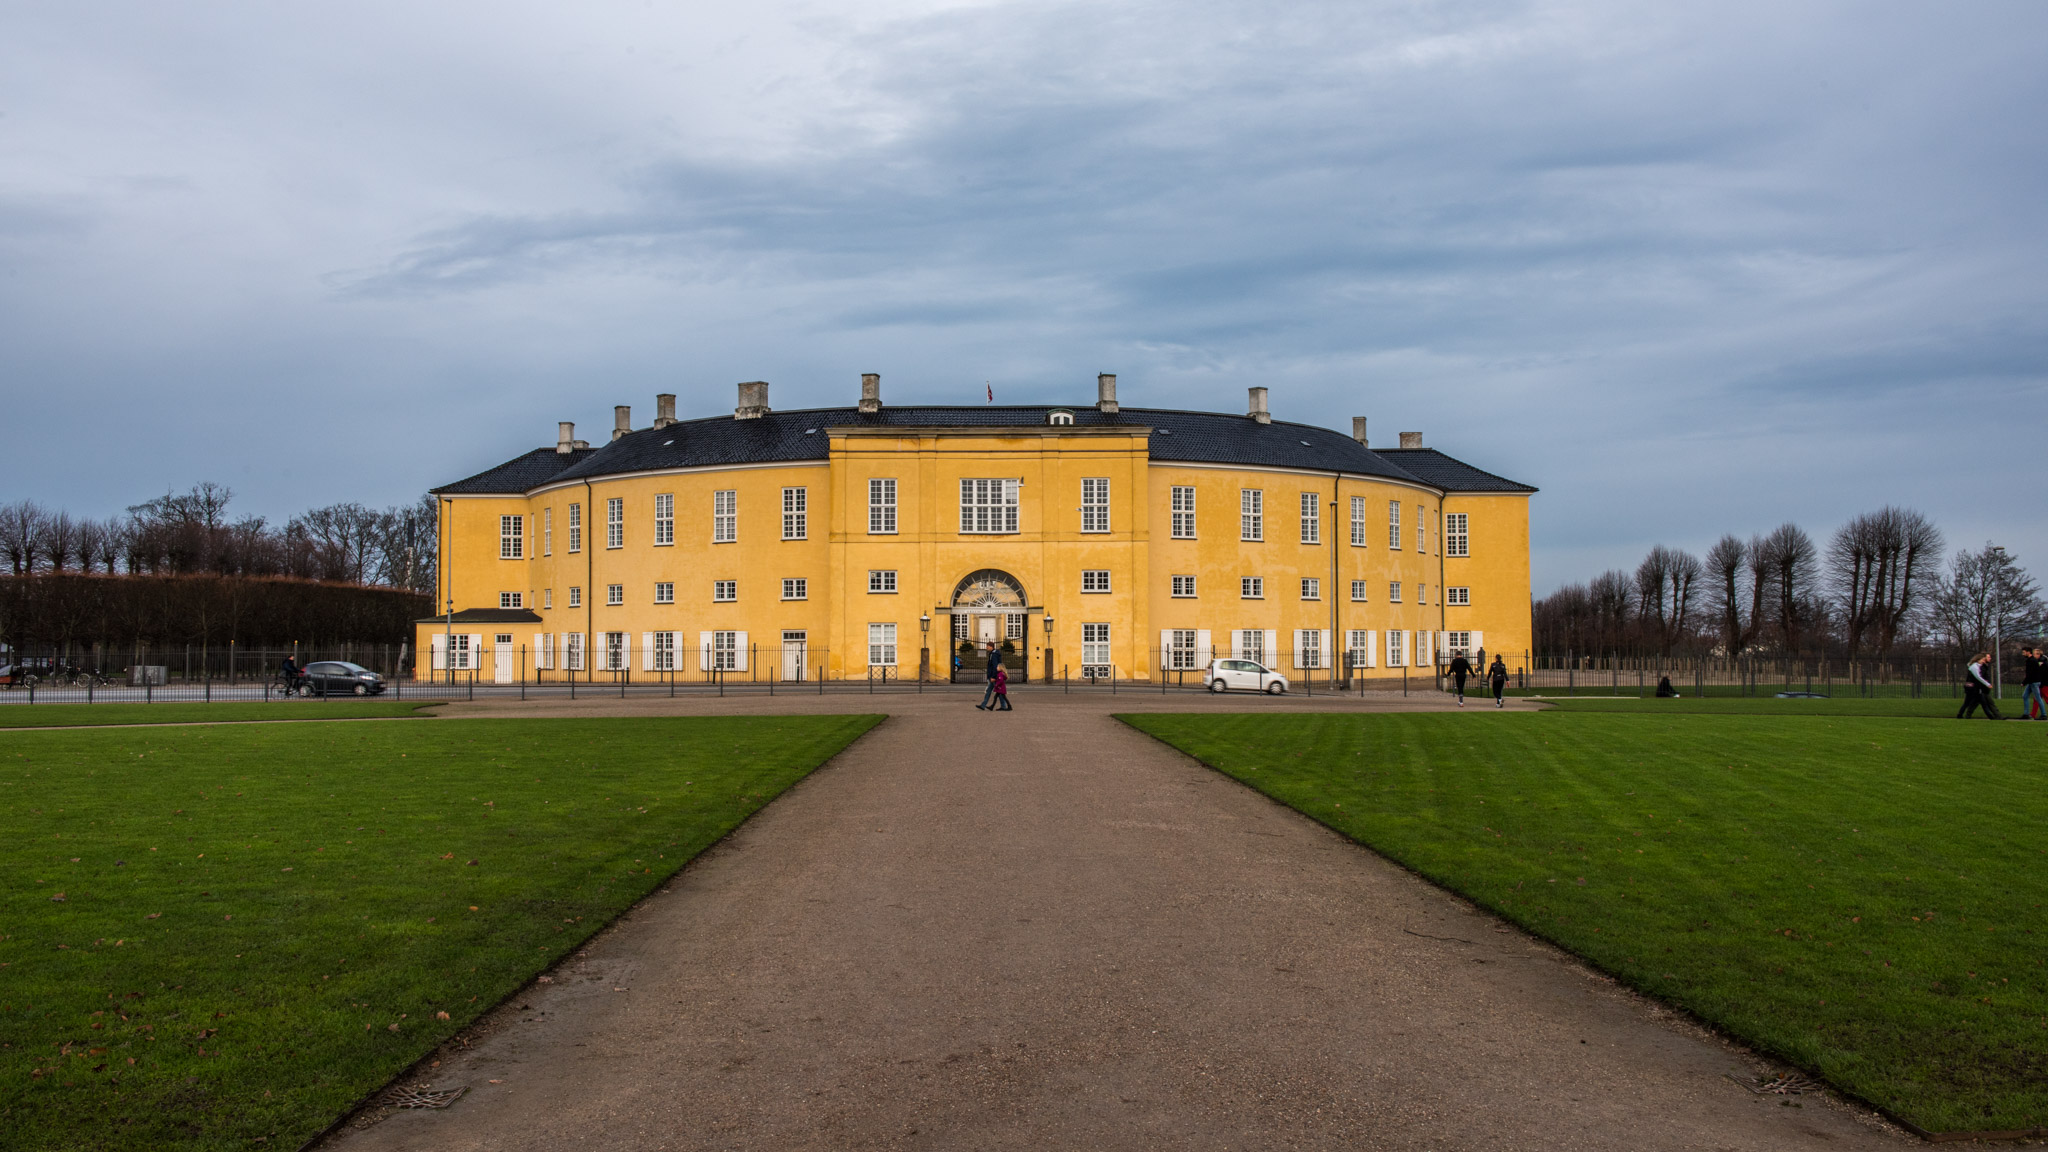 Historic buildings in Frederiksberg - Frederiksberg Palace